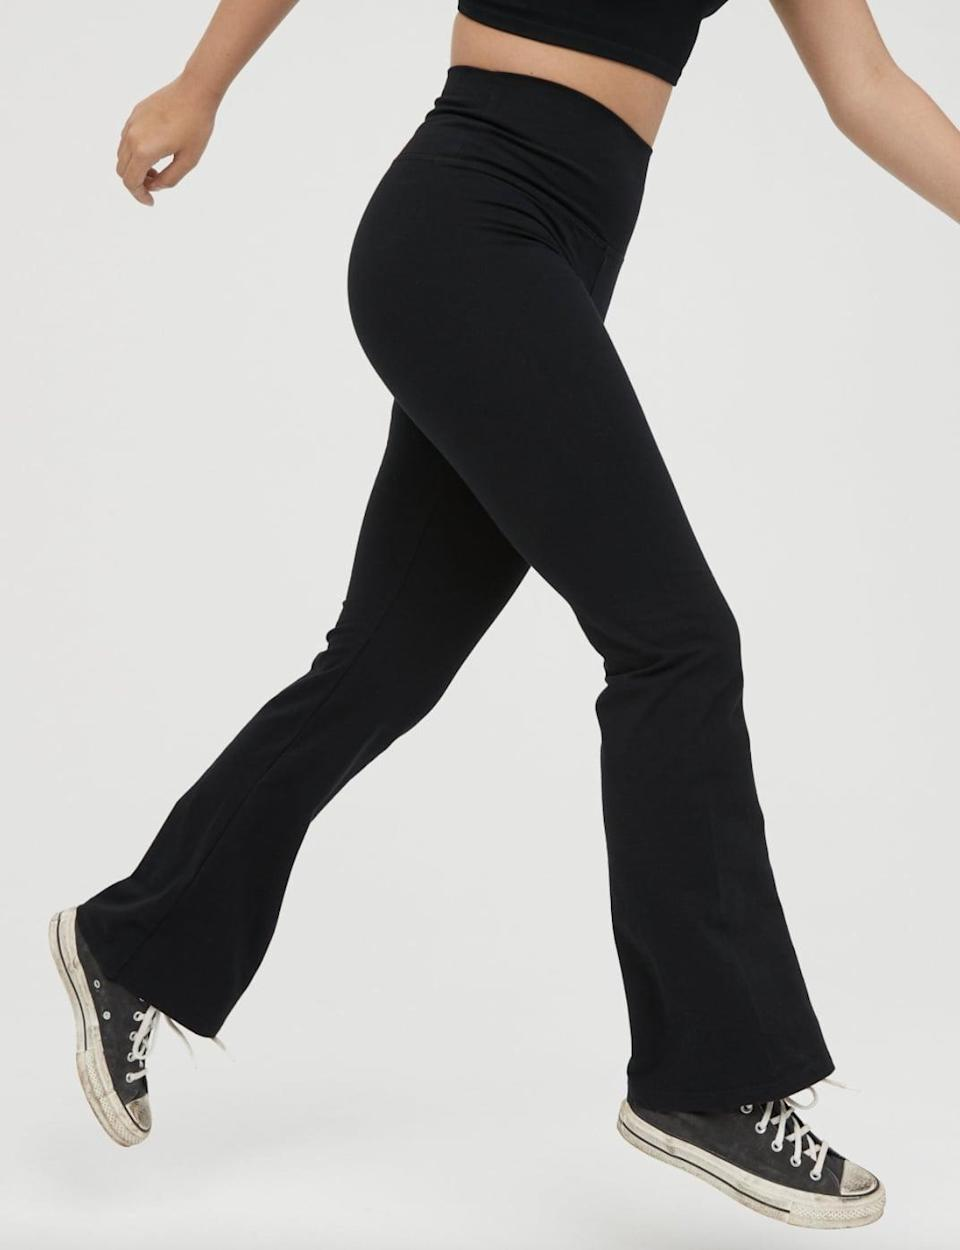 <p>These <span>Aerie Offline OG High Waisted Flare Leggings</span> ($22, originally $30) are up for your next bike ride, grocery run or park hang.</p>